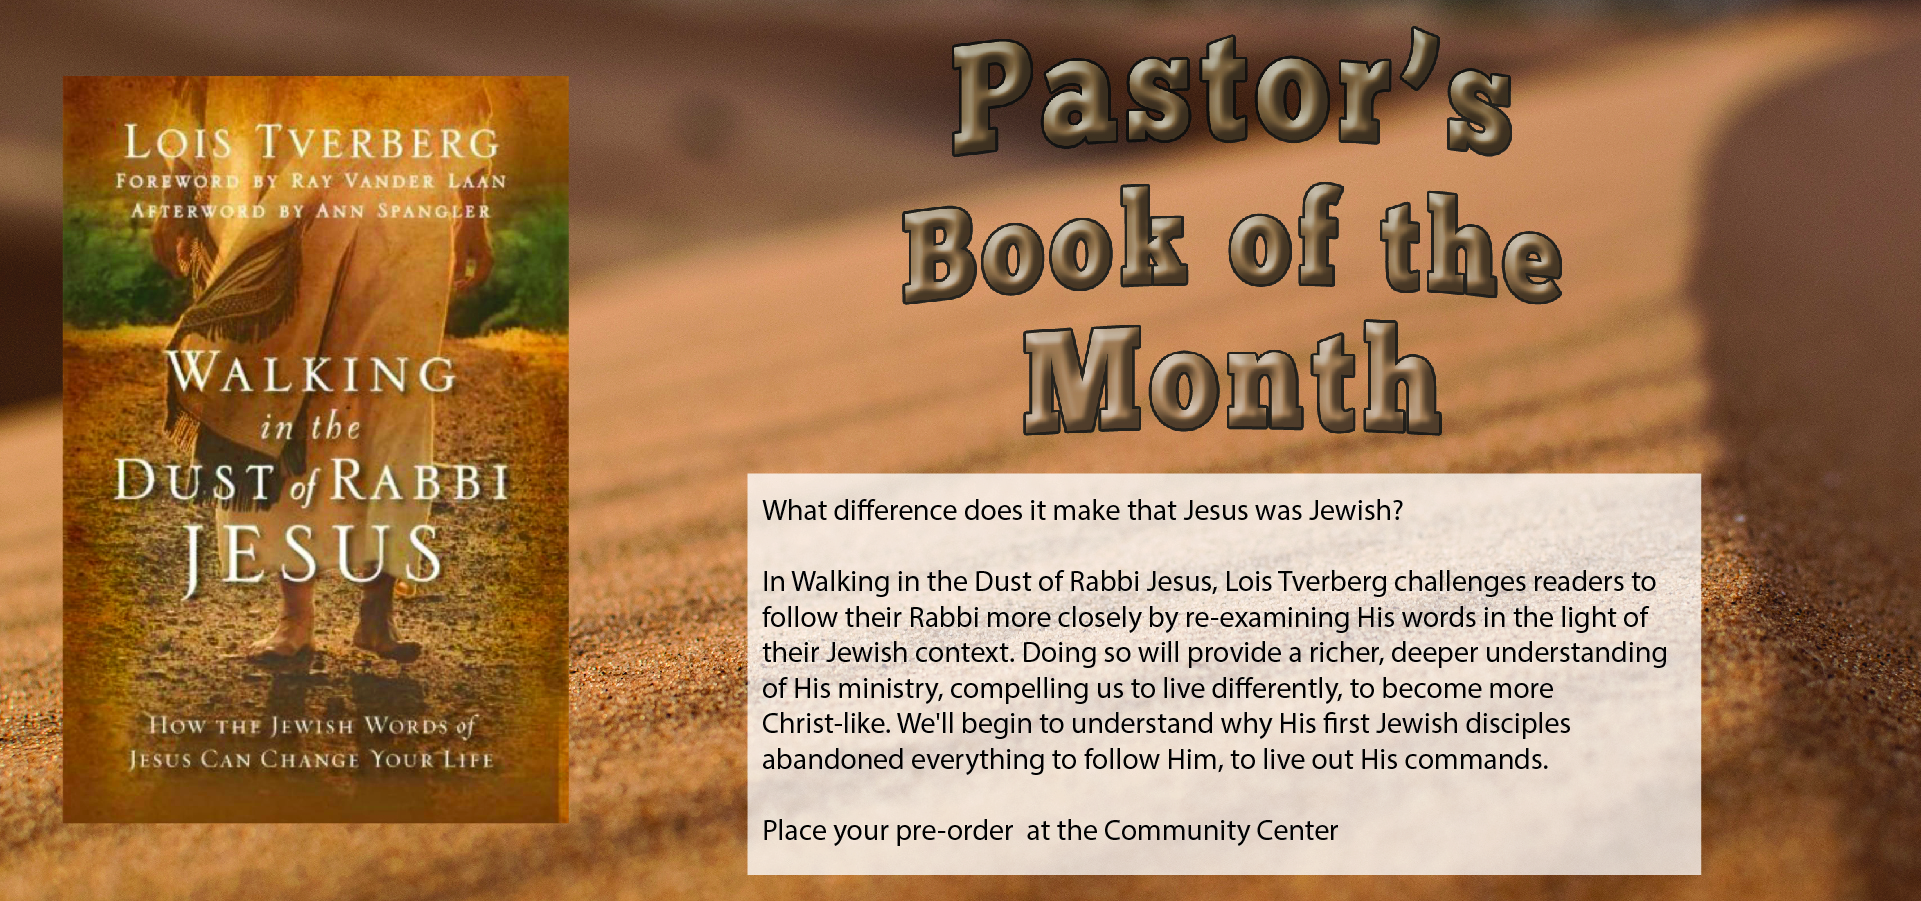 Pastor's Book of the Month